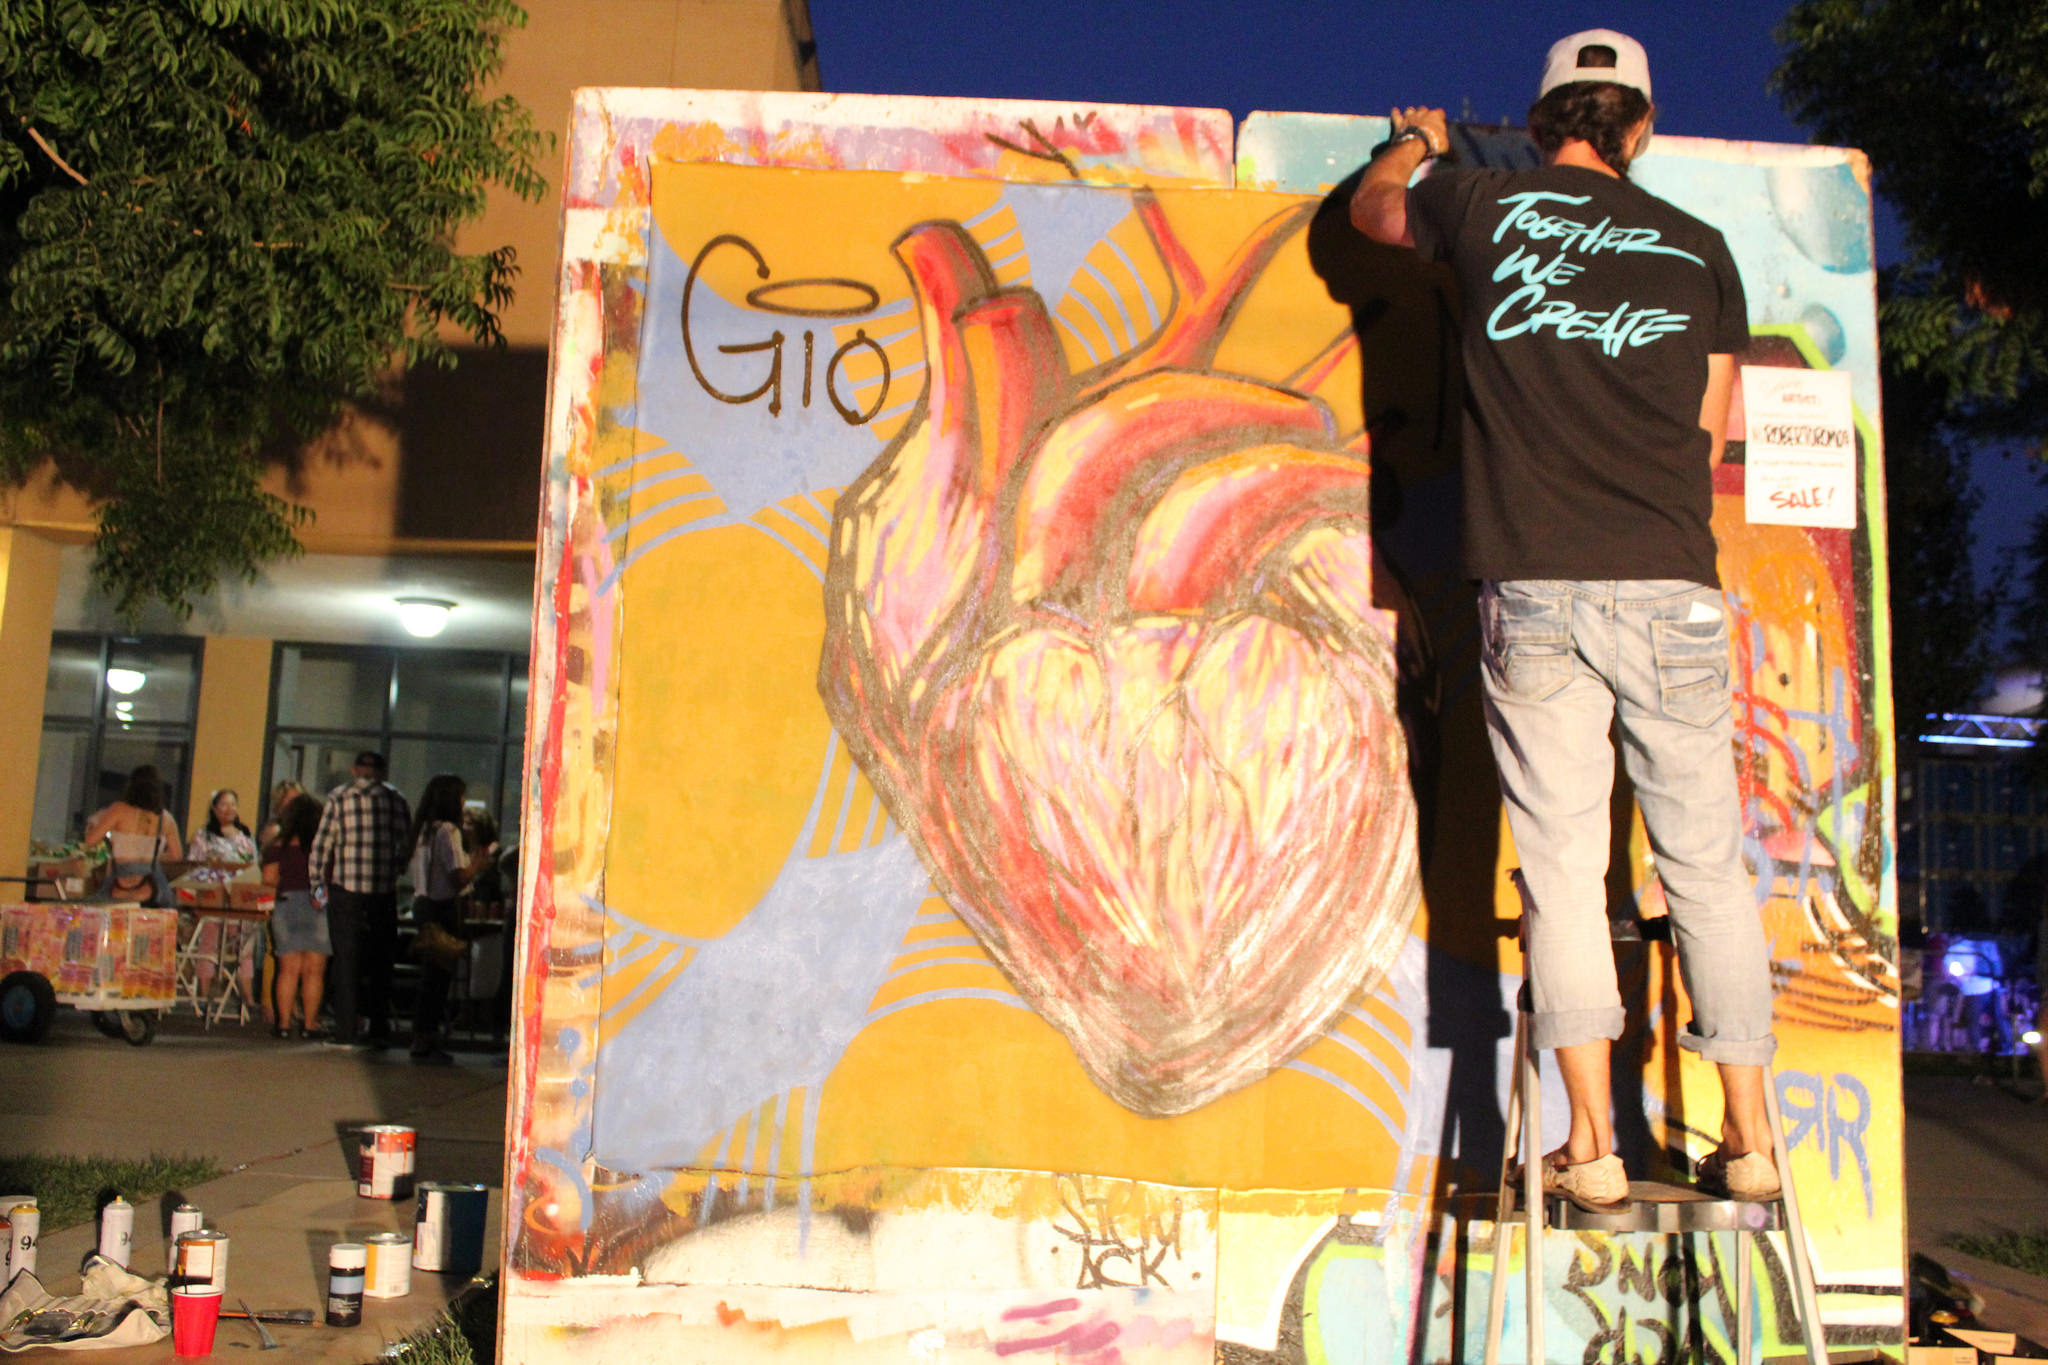 Live painting by Roberto Romo from Together We Create, a collective of educators and artists. Photo by Orlando Espino.